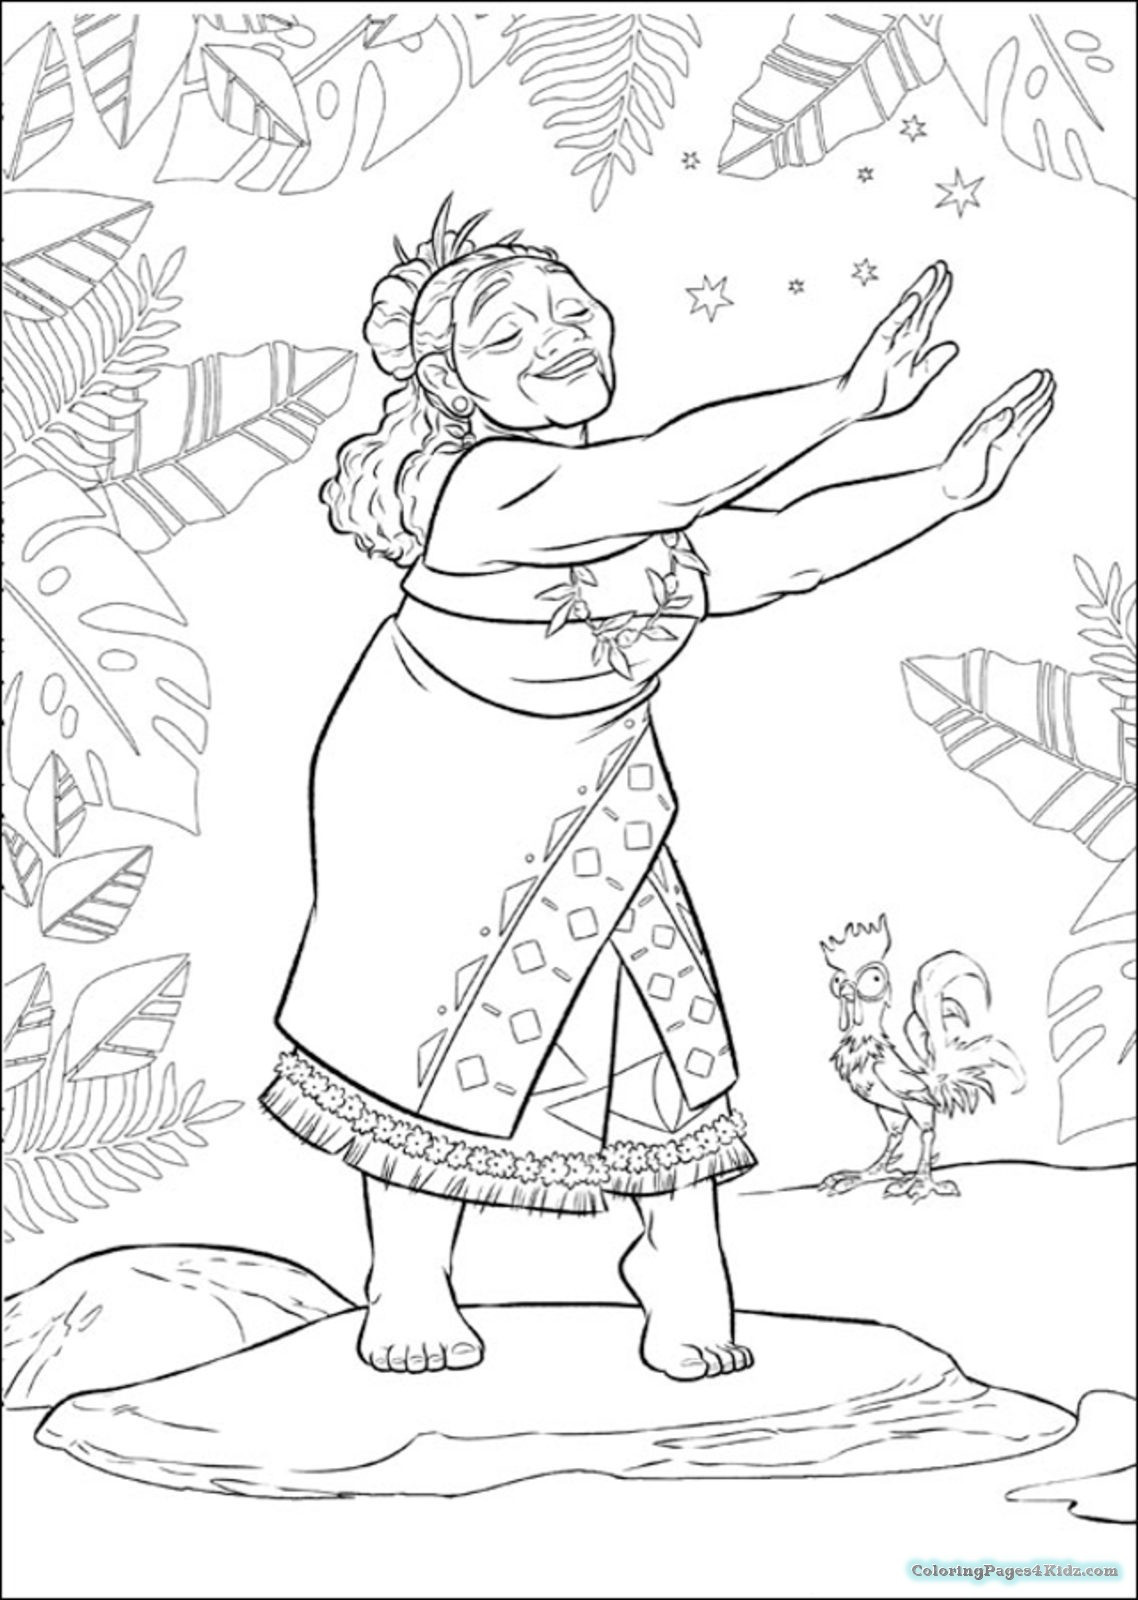 Best ideas about Moana Coloring Sheets For Girls . Save or Pin Girl Coloring Pages Moana Now.